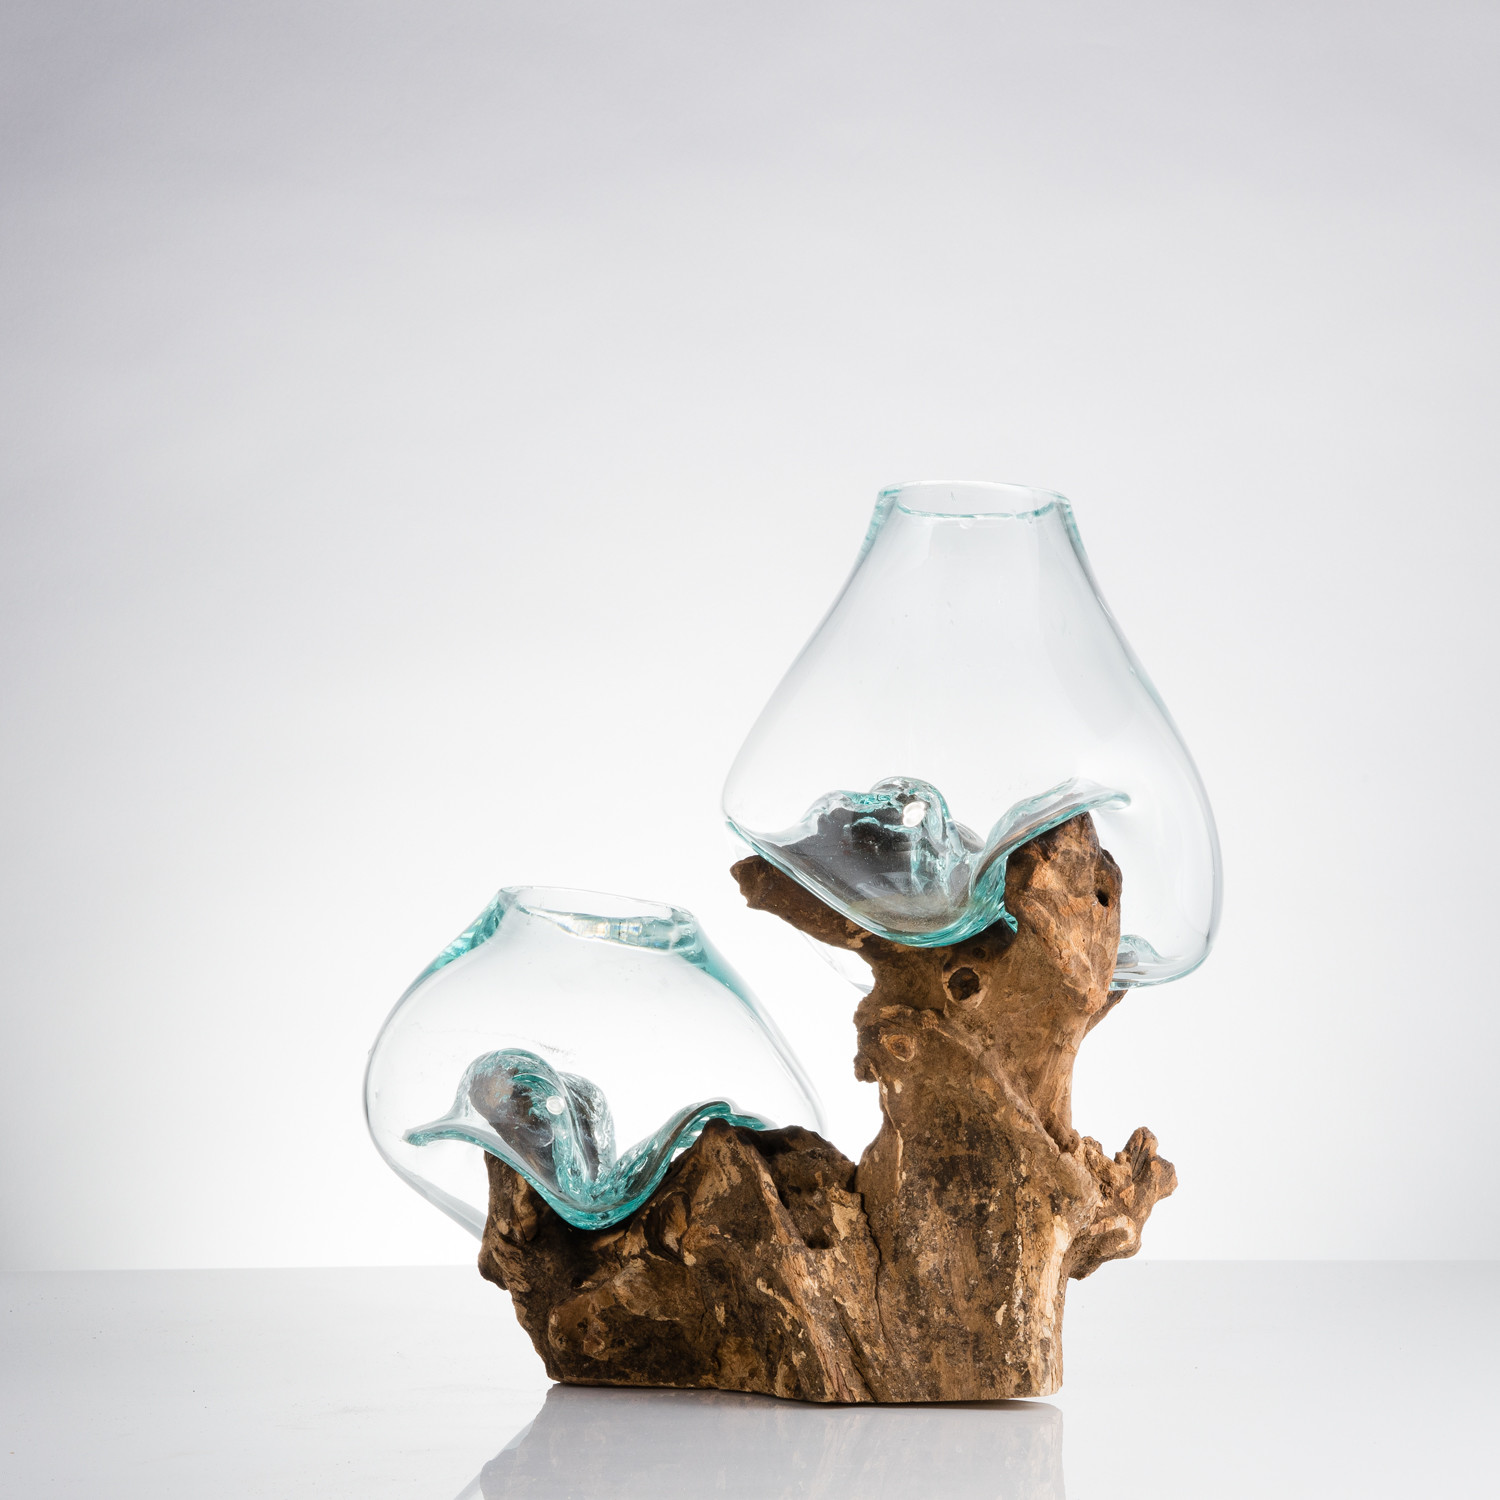 Gamal root two molten glass vases whatic2 touch of modern gamal root two molten glass vases reviewsmspy